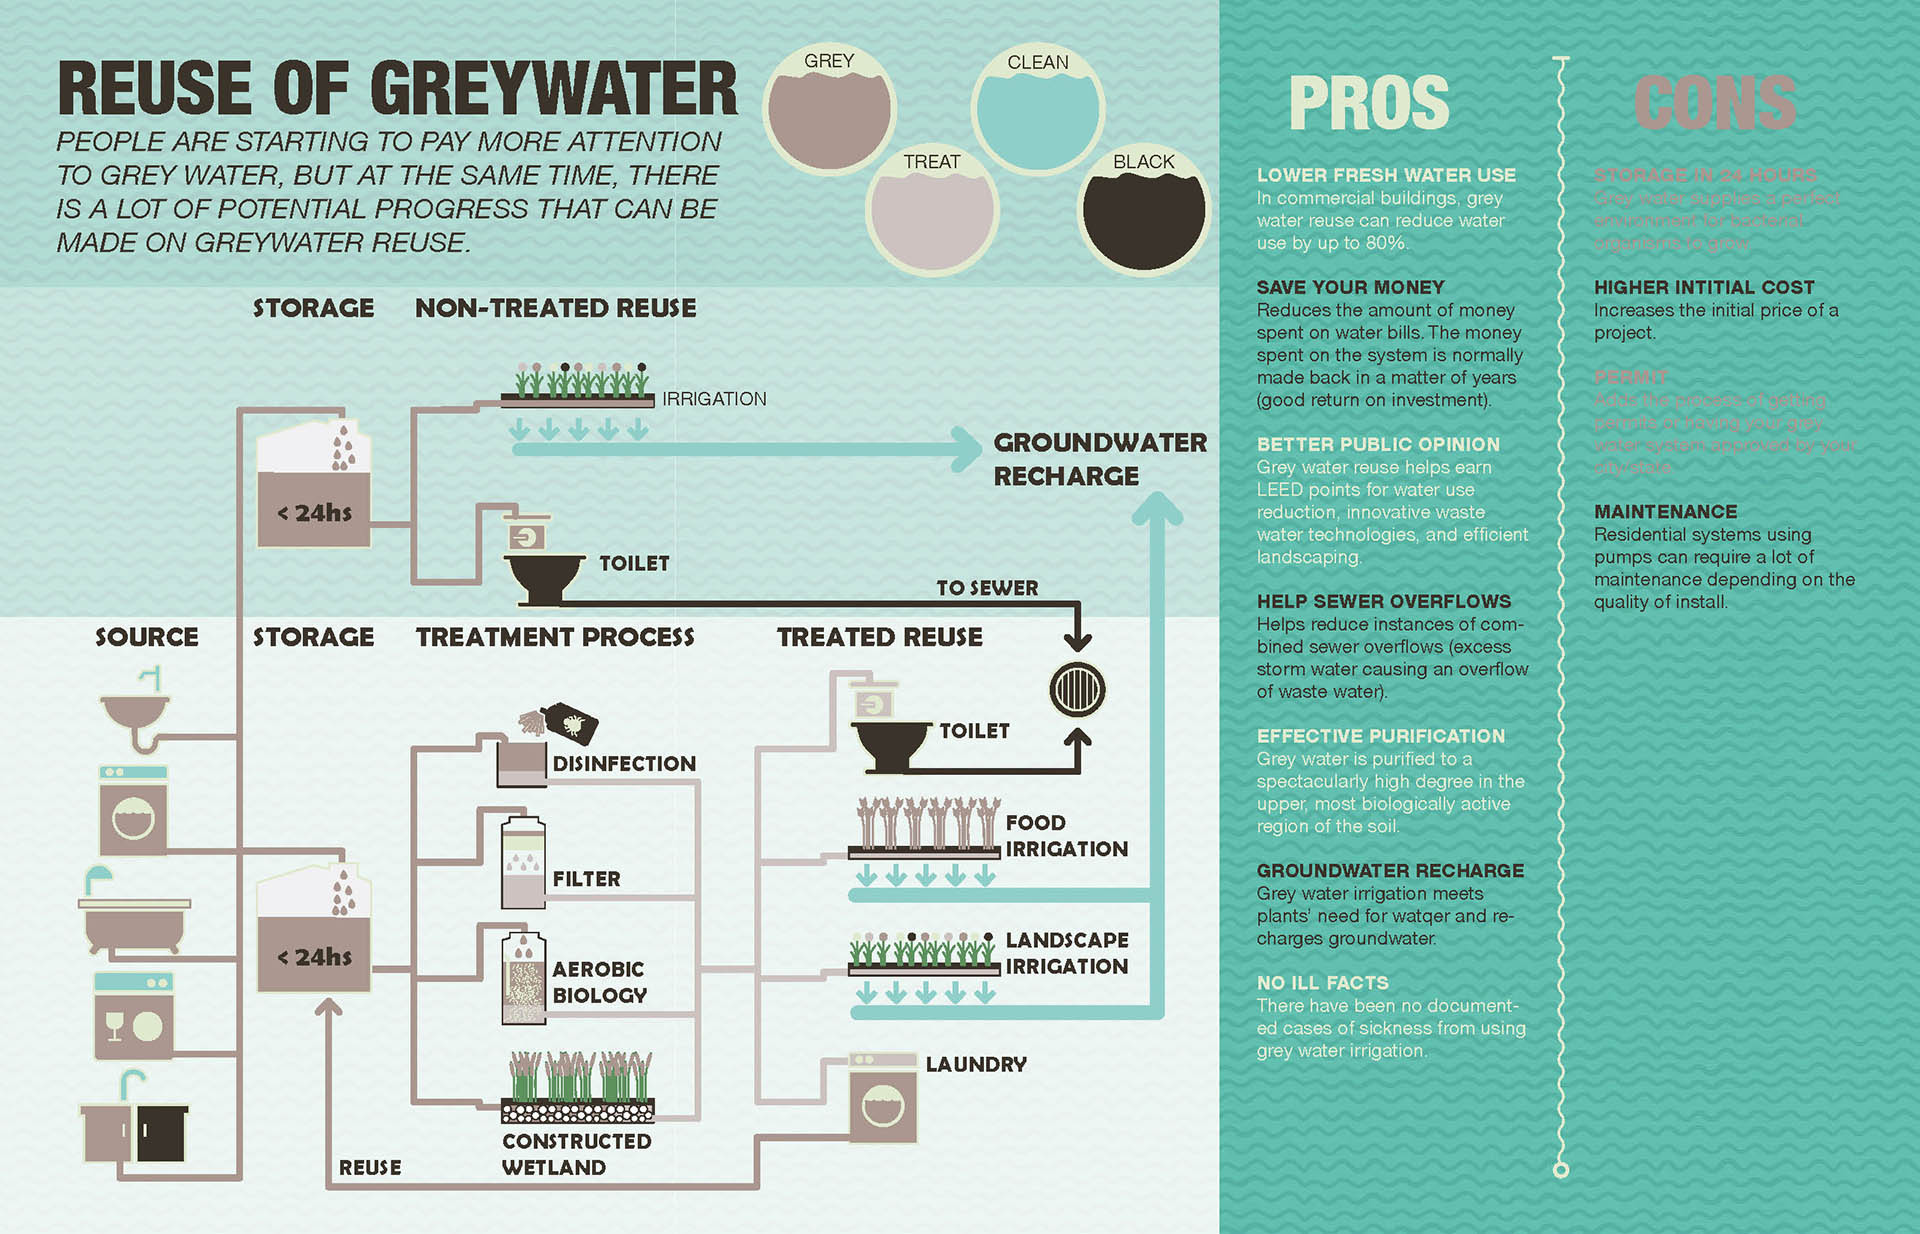 02 Grey water reuse system and its Pros and Cons.jpg